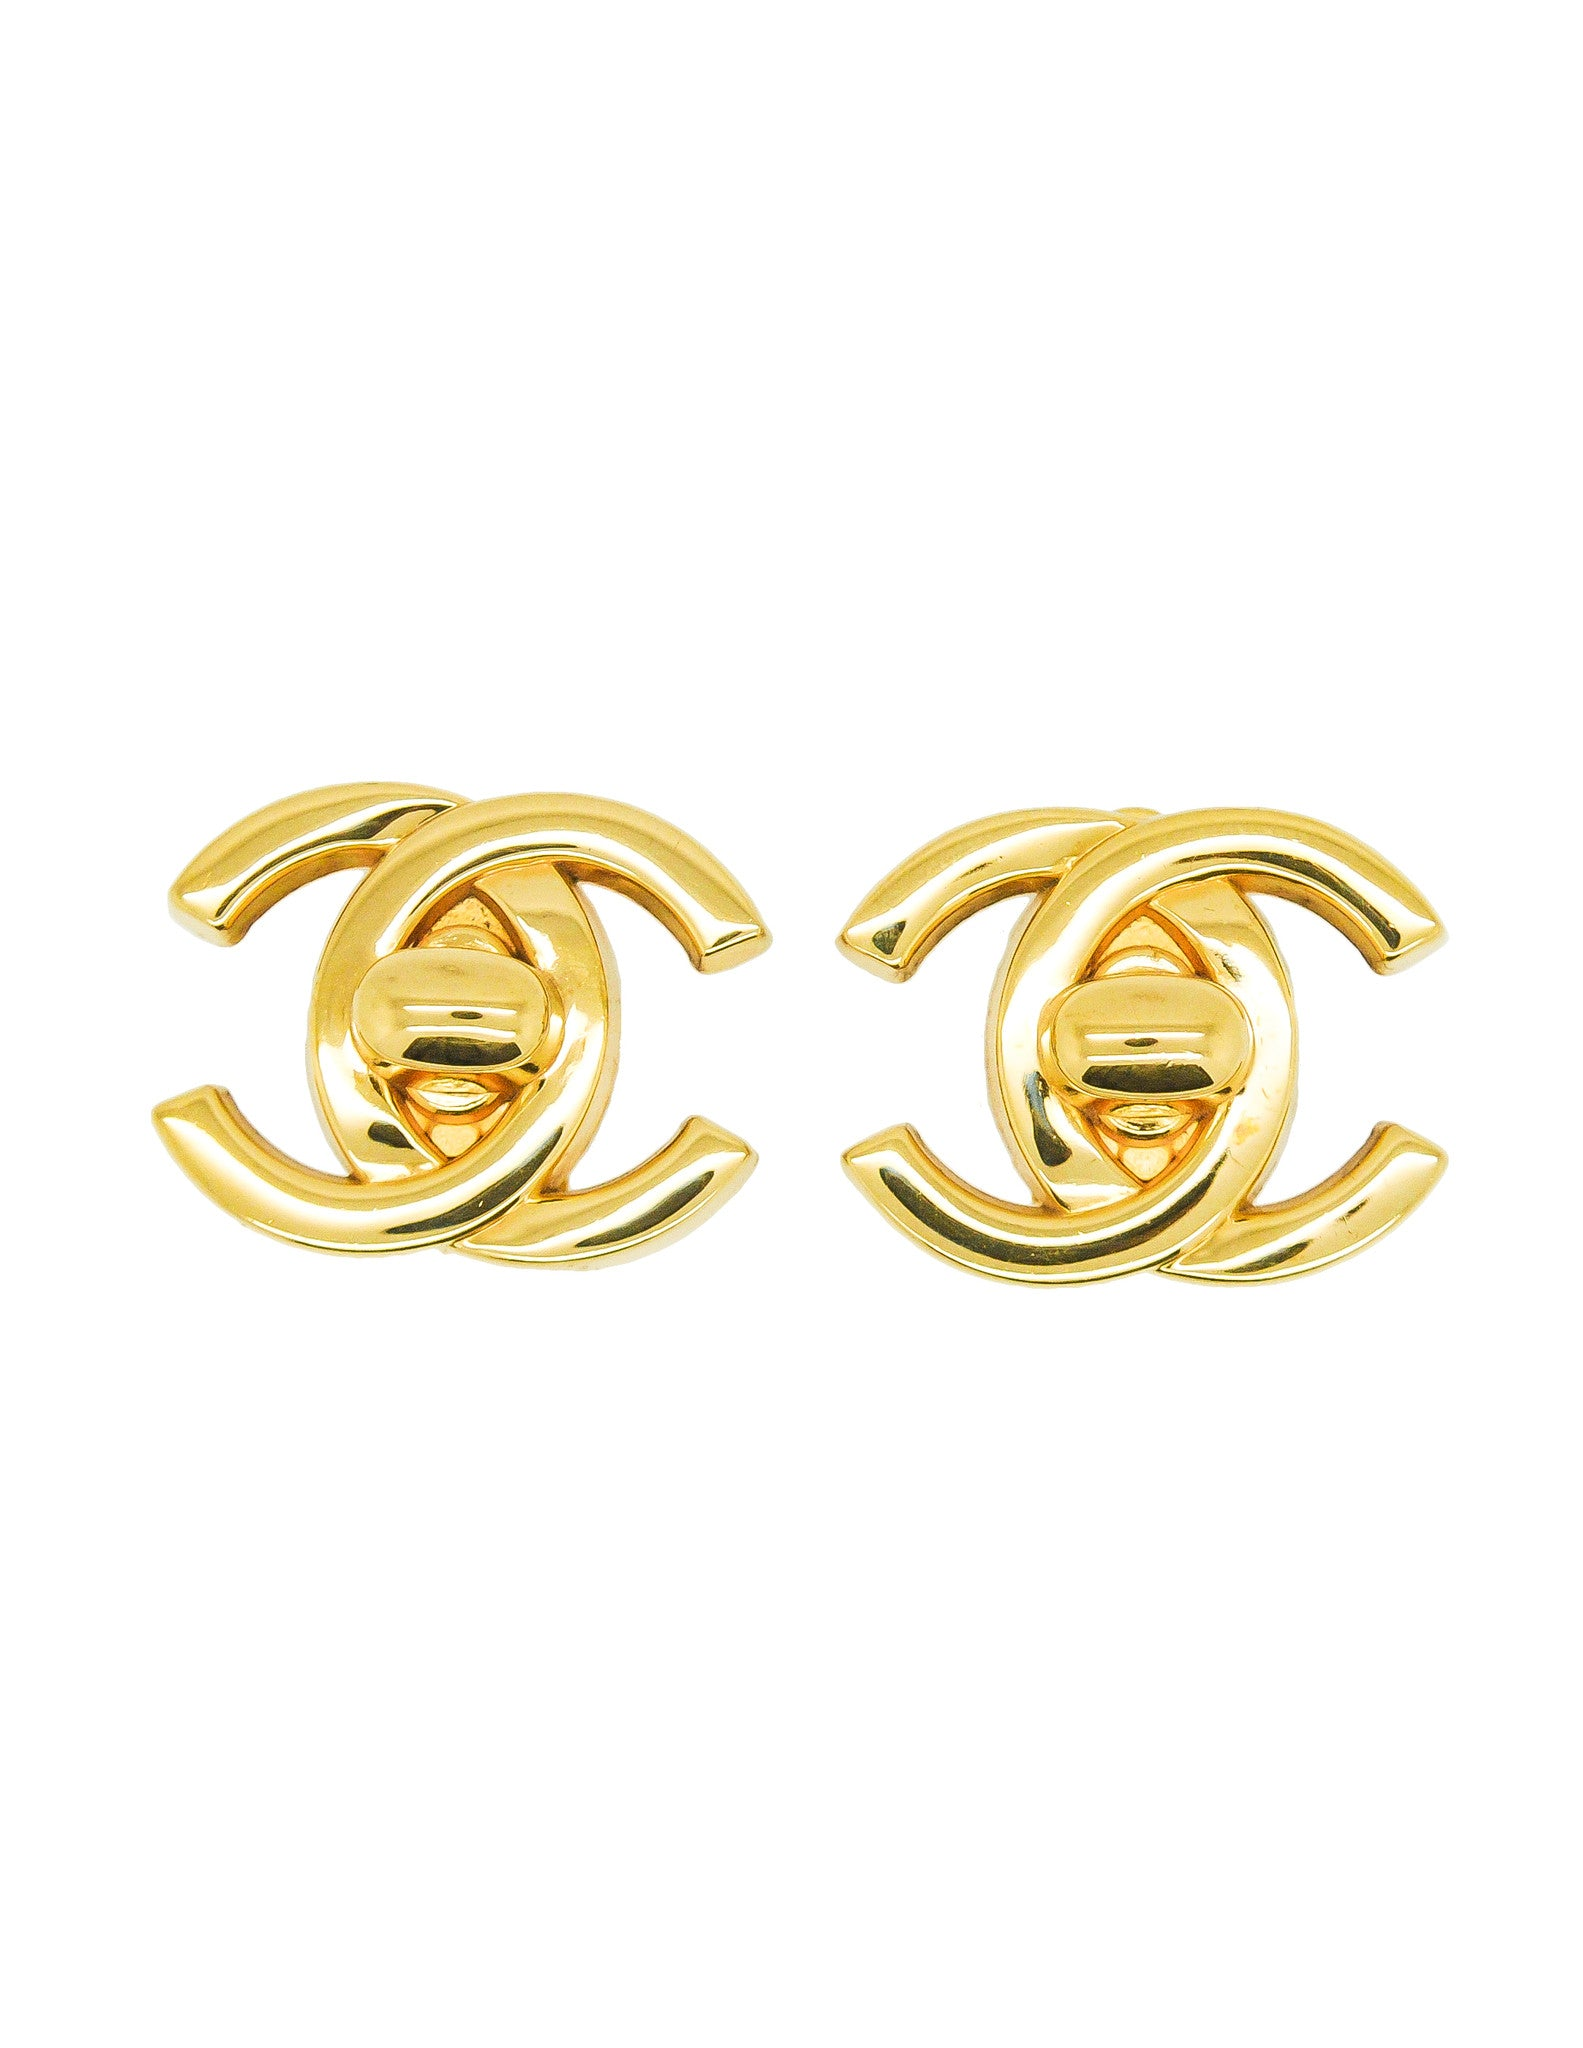 Chanel Vintage Turn Lock CC Clasp Earrings - Amarcord Vintage Fashion  - 1